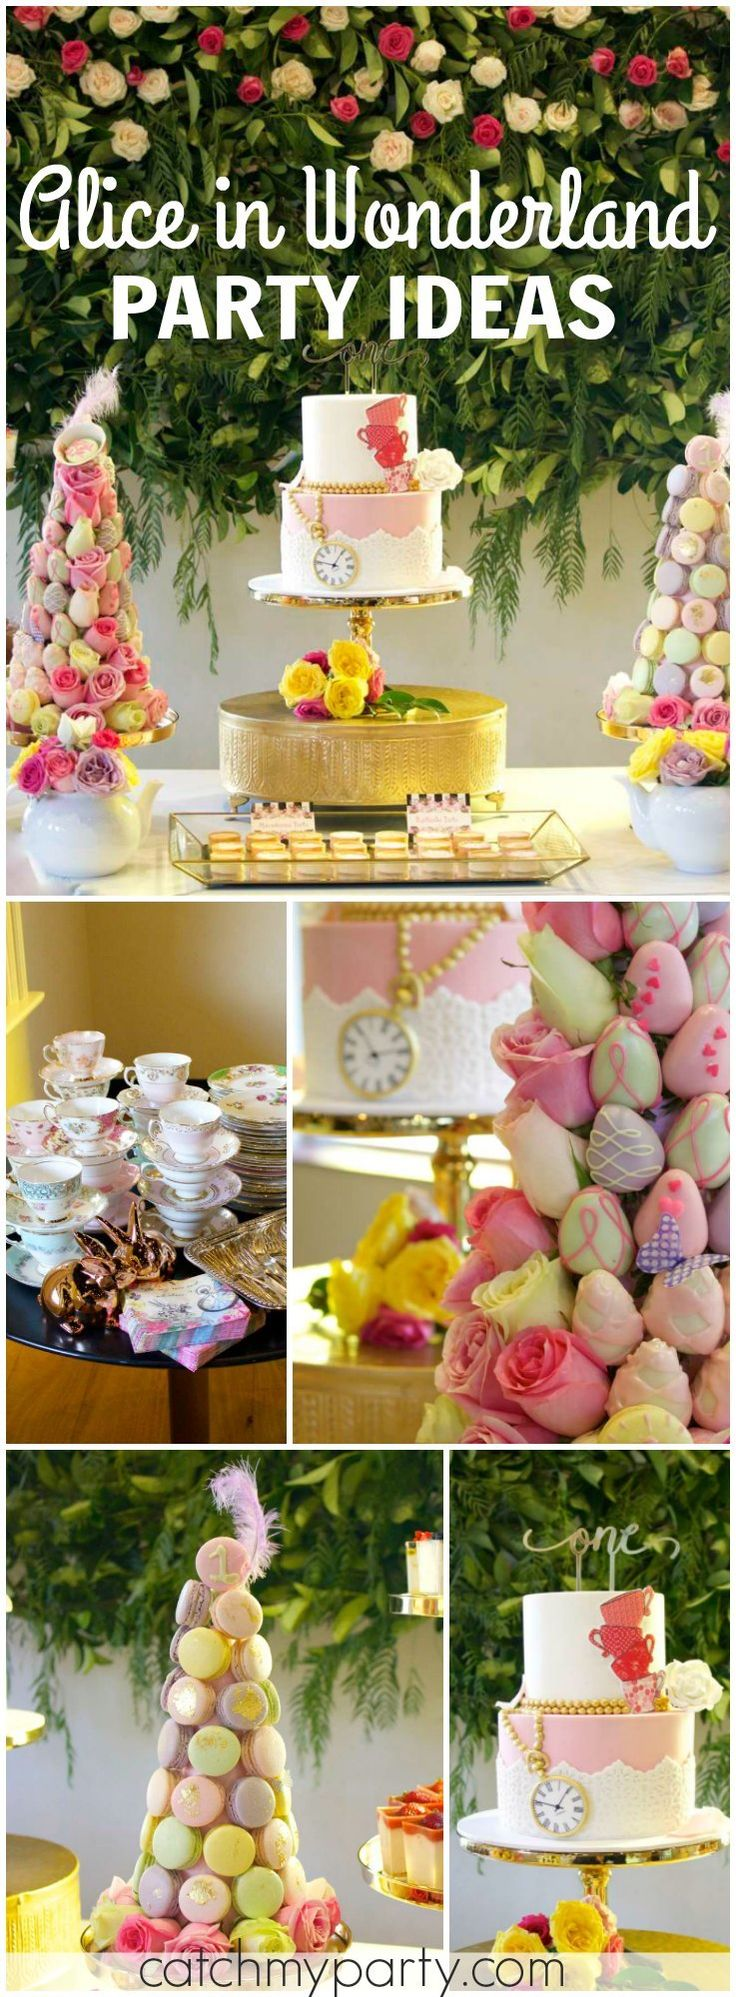 741 best Alice in Wonderland Party Ideas images on Pinterest ...